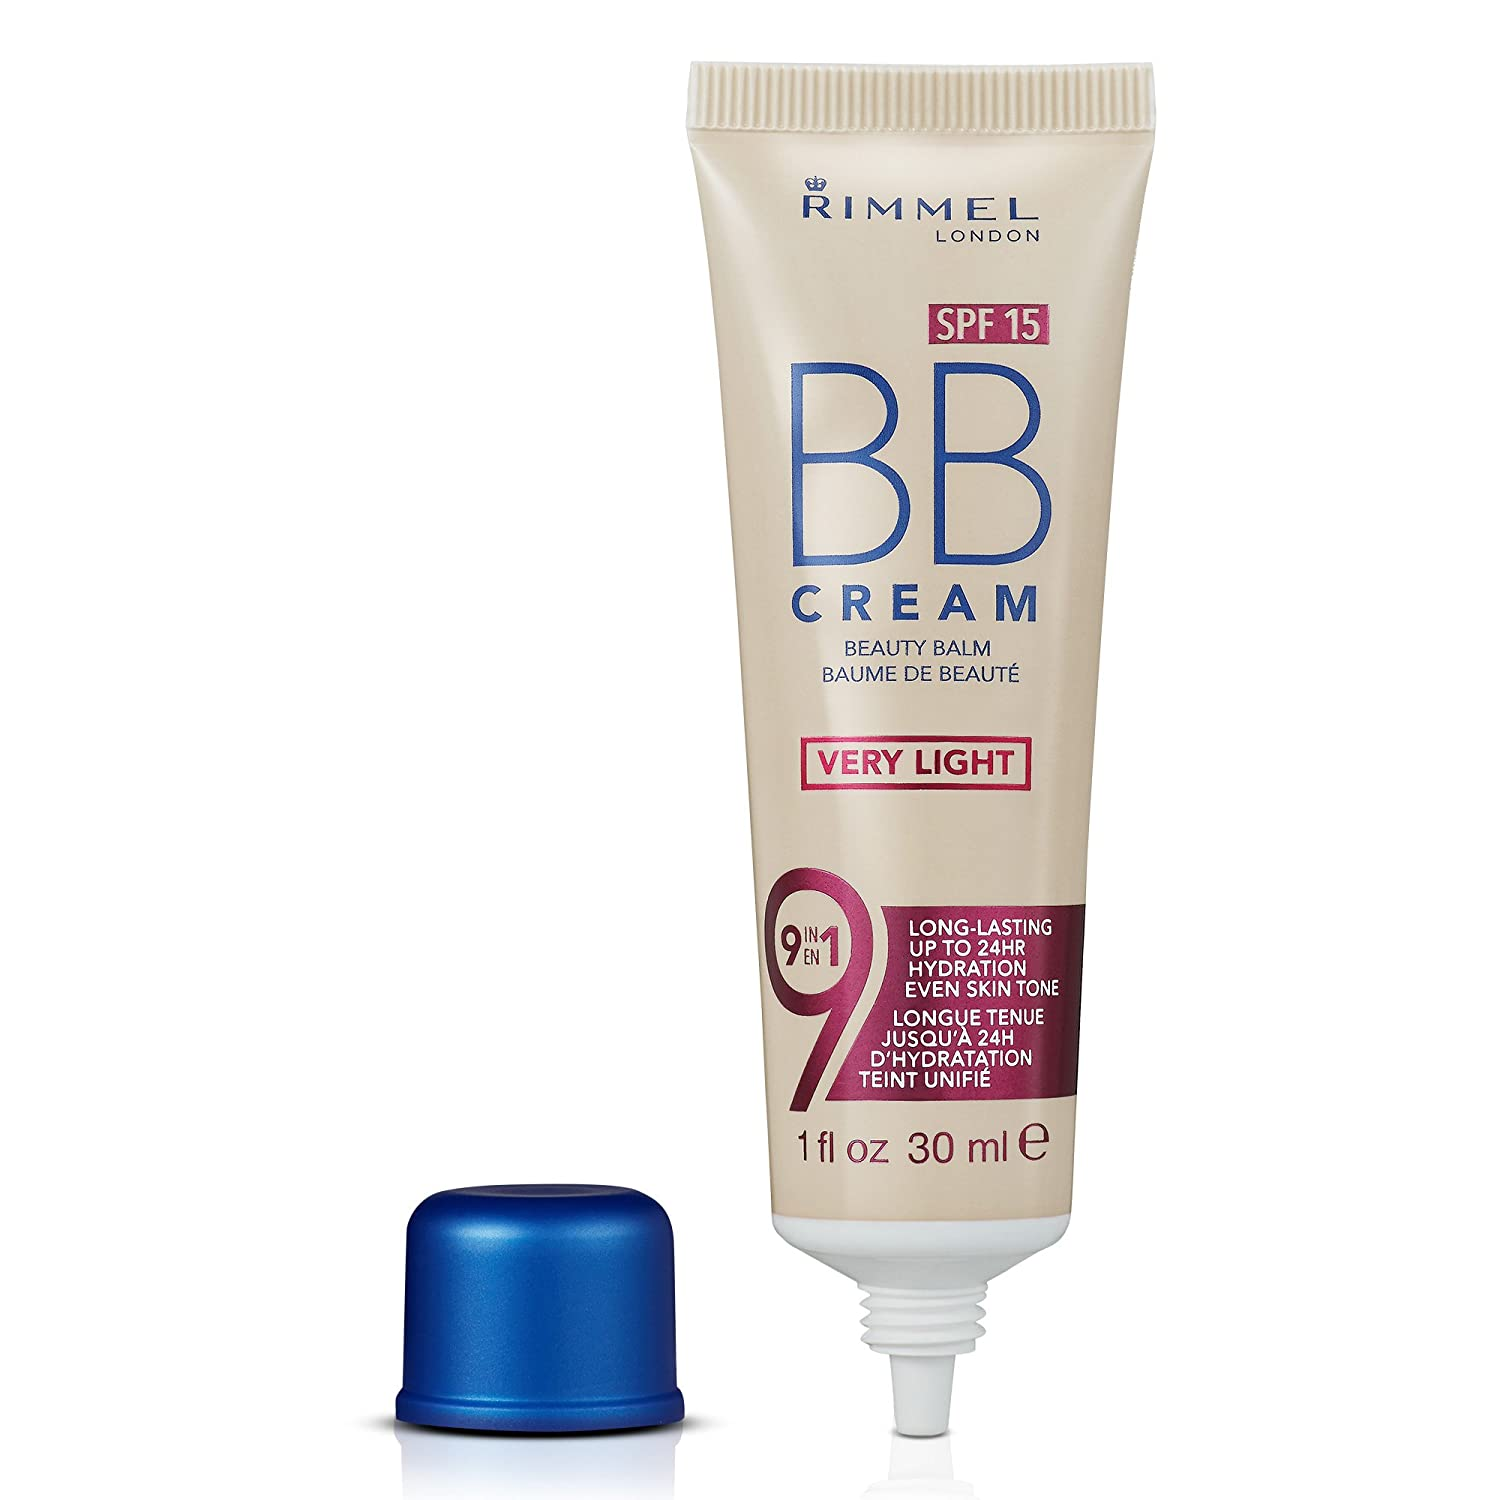 Rimmel London BB Cream, Medium, 30 ml Coty 34775952002